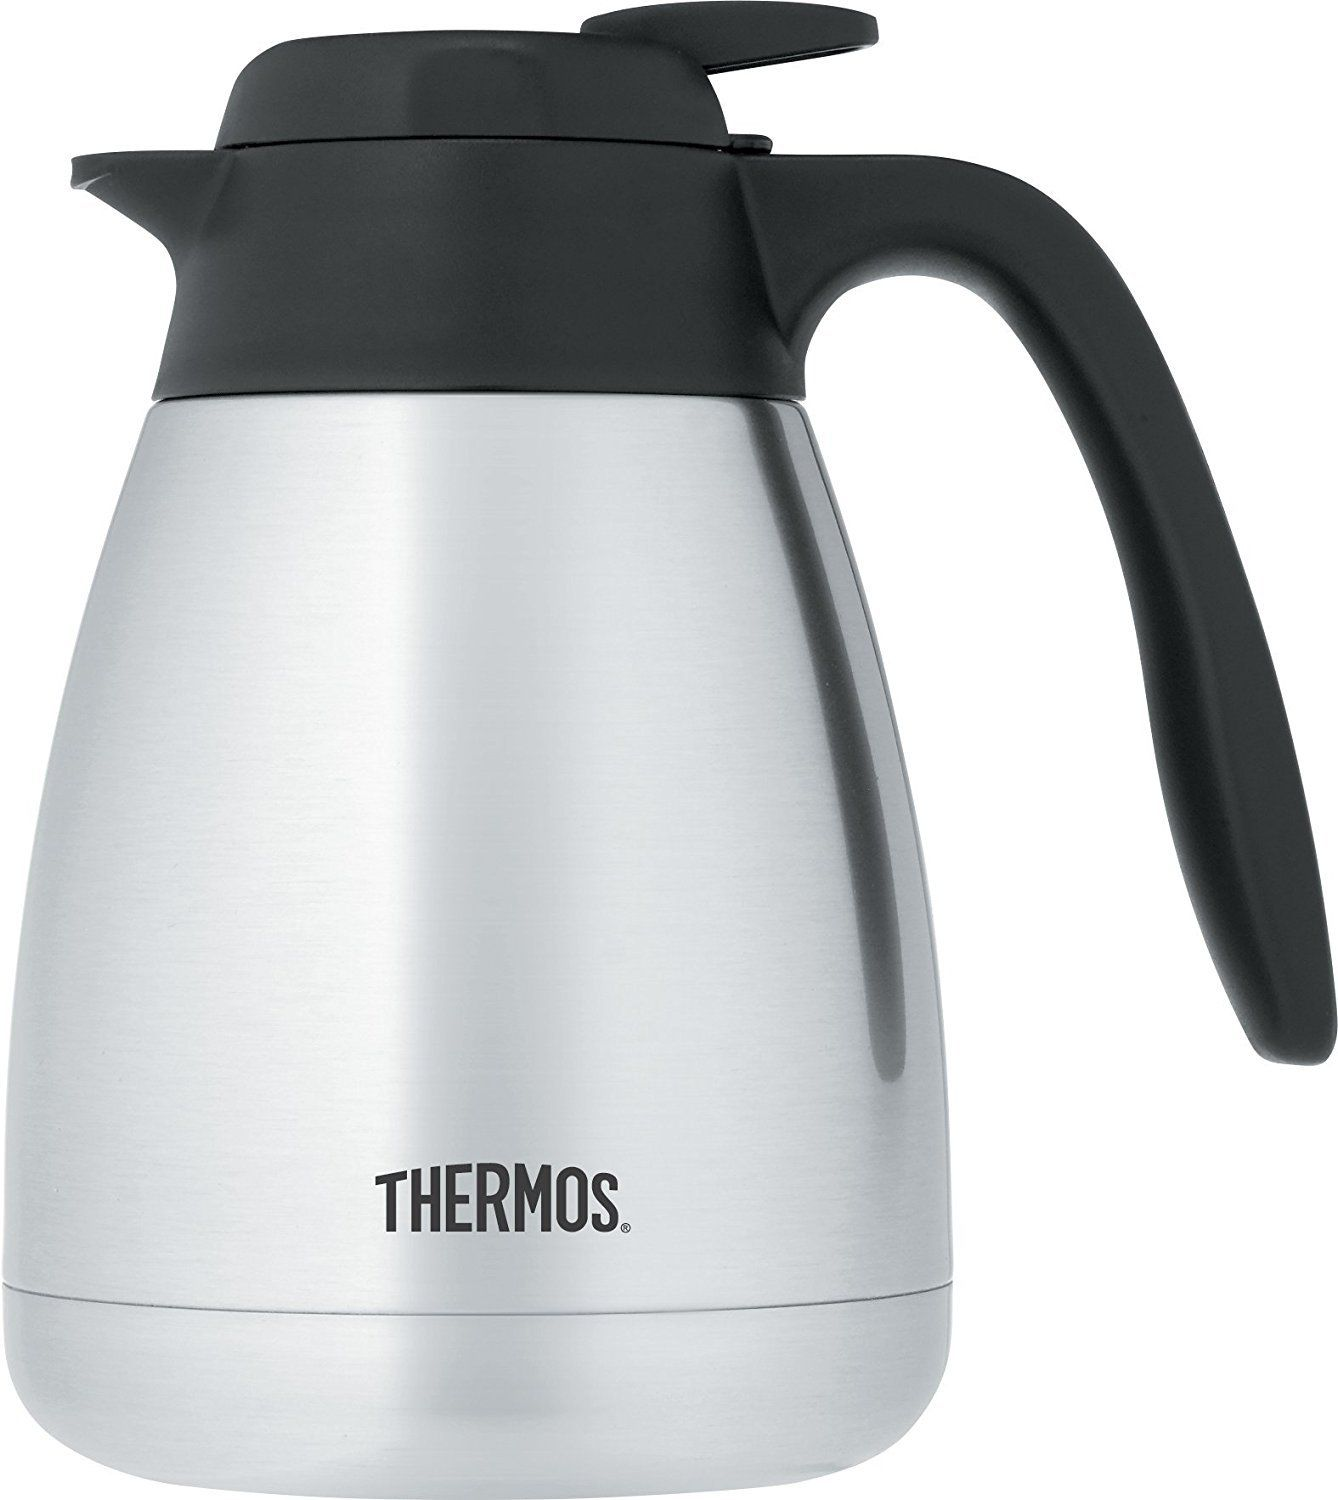 Thermos 34 Ounce/1.0 Litre Vacuum Insulated Stainless